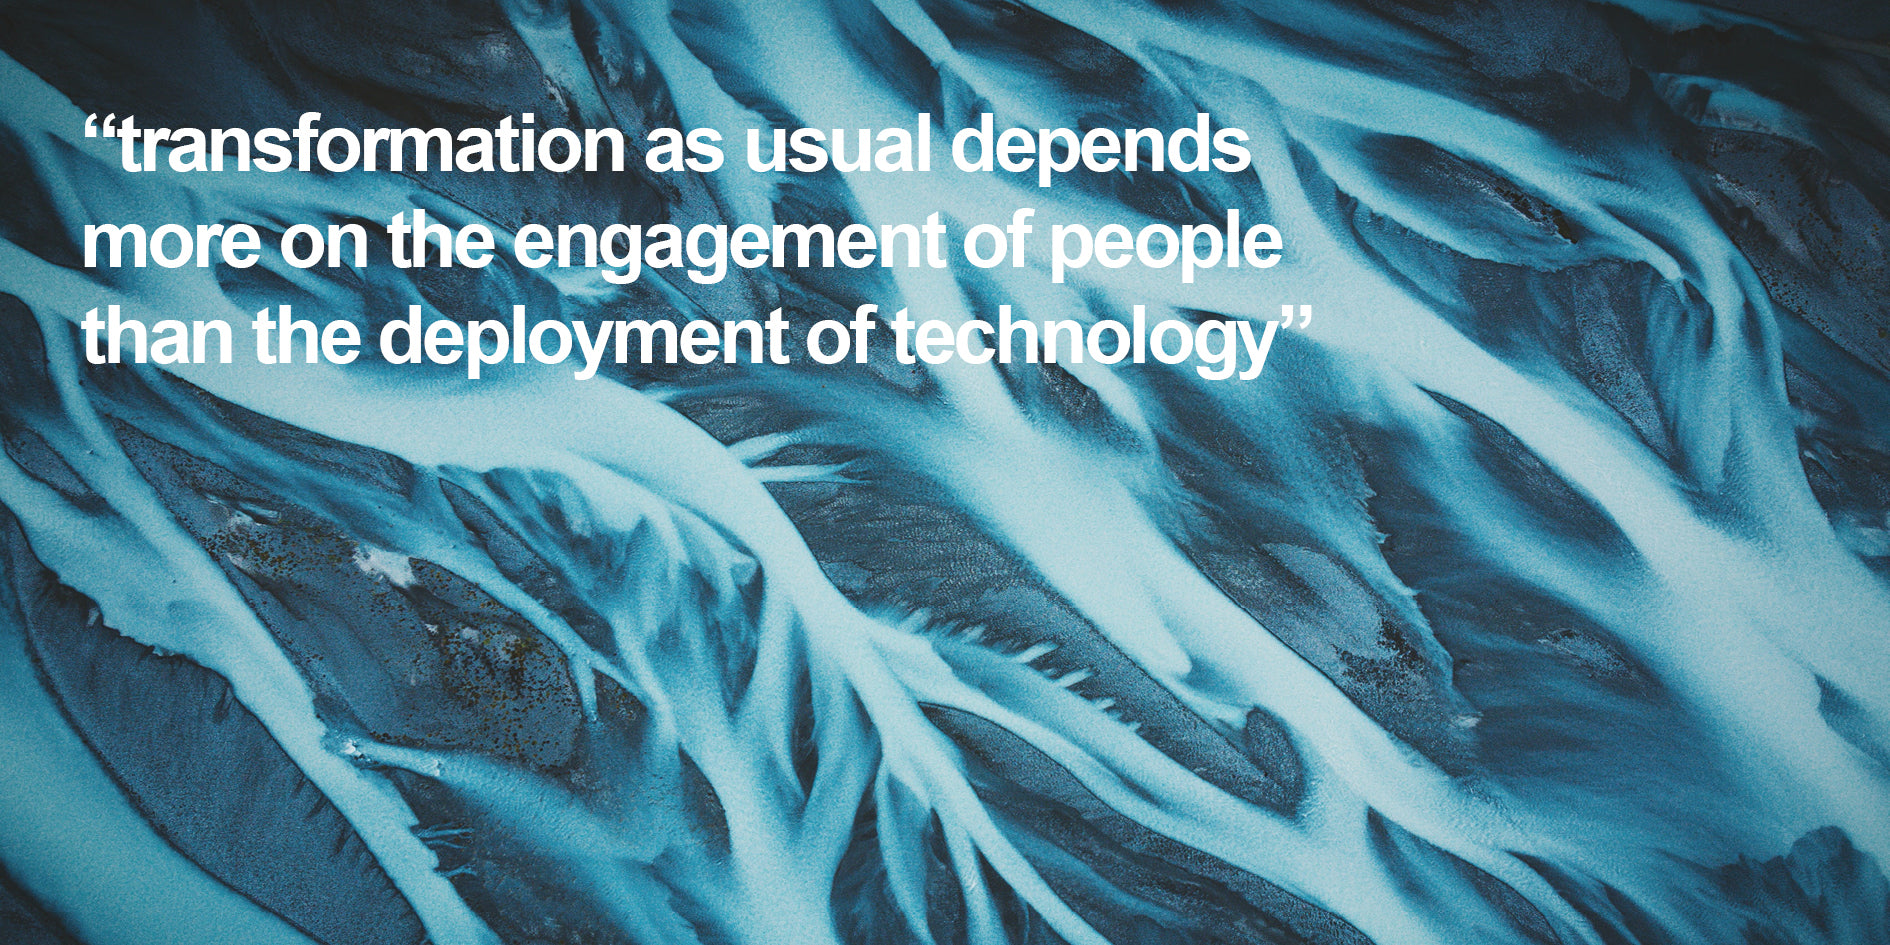 transformation as usual depends more on the engagement of people than the deployment of technology